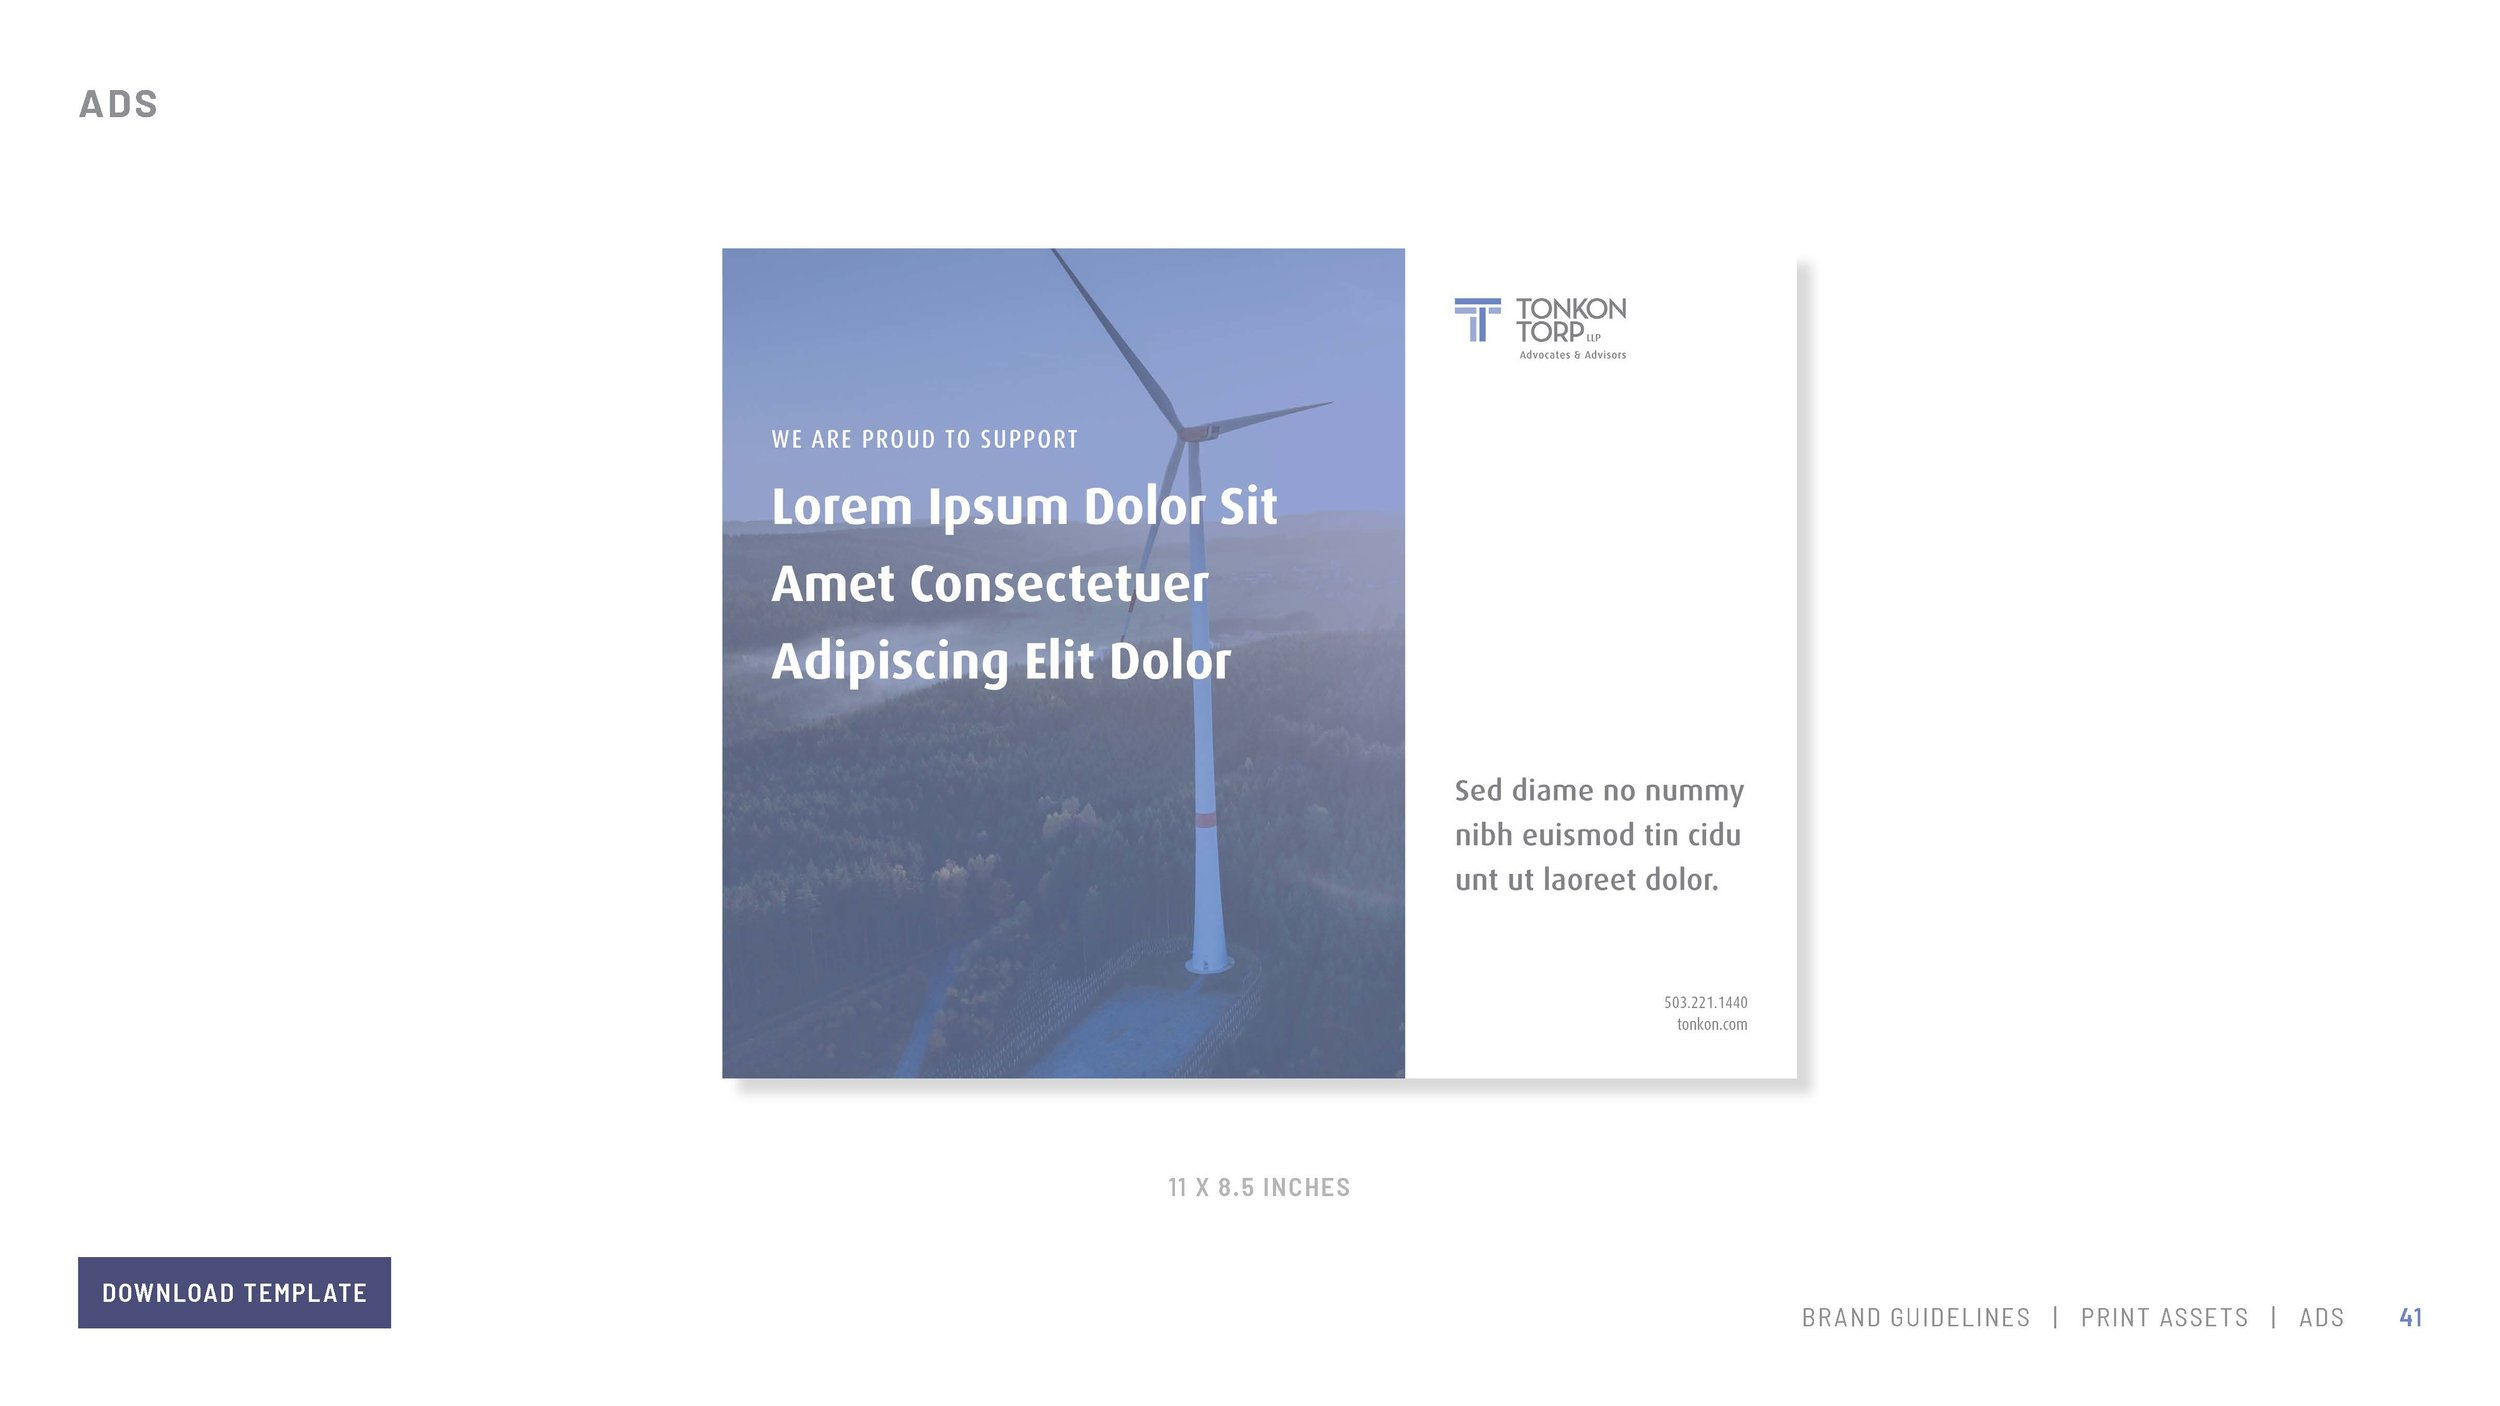 TTL_Brand Guidelines_Rd2_Page_41.jpg